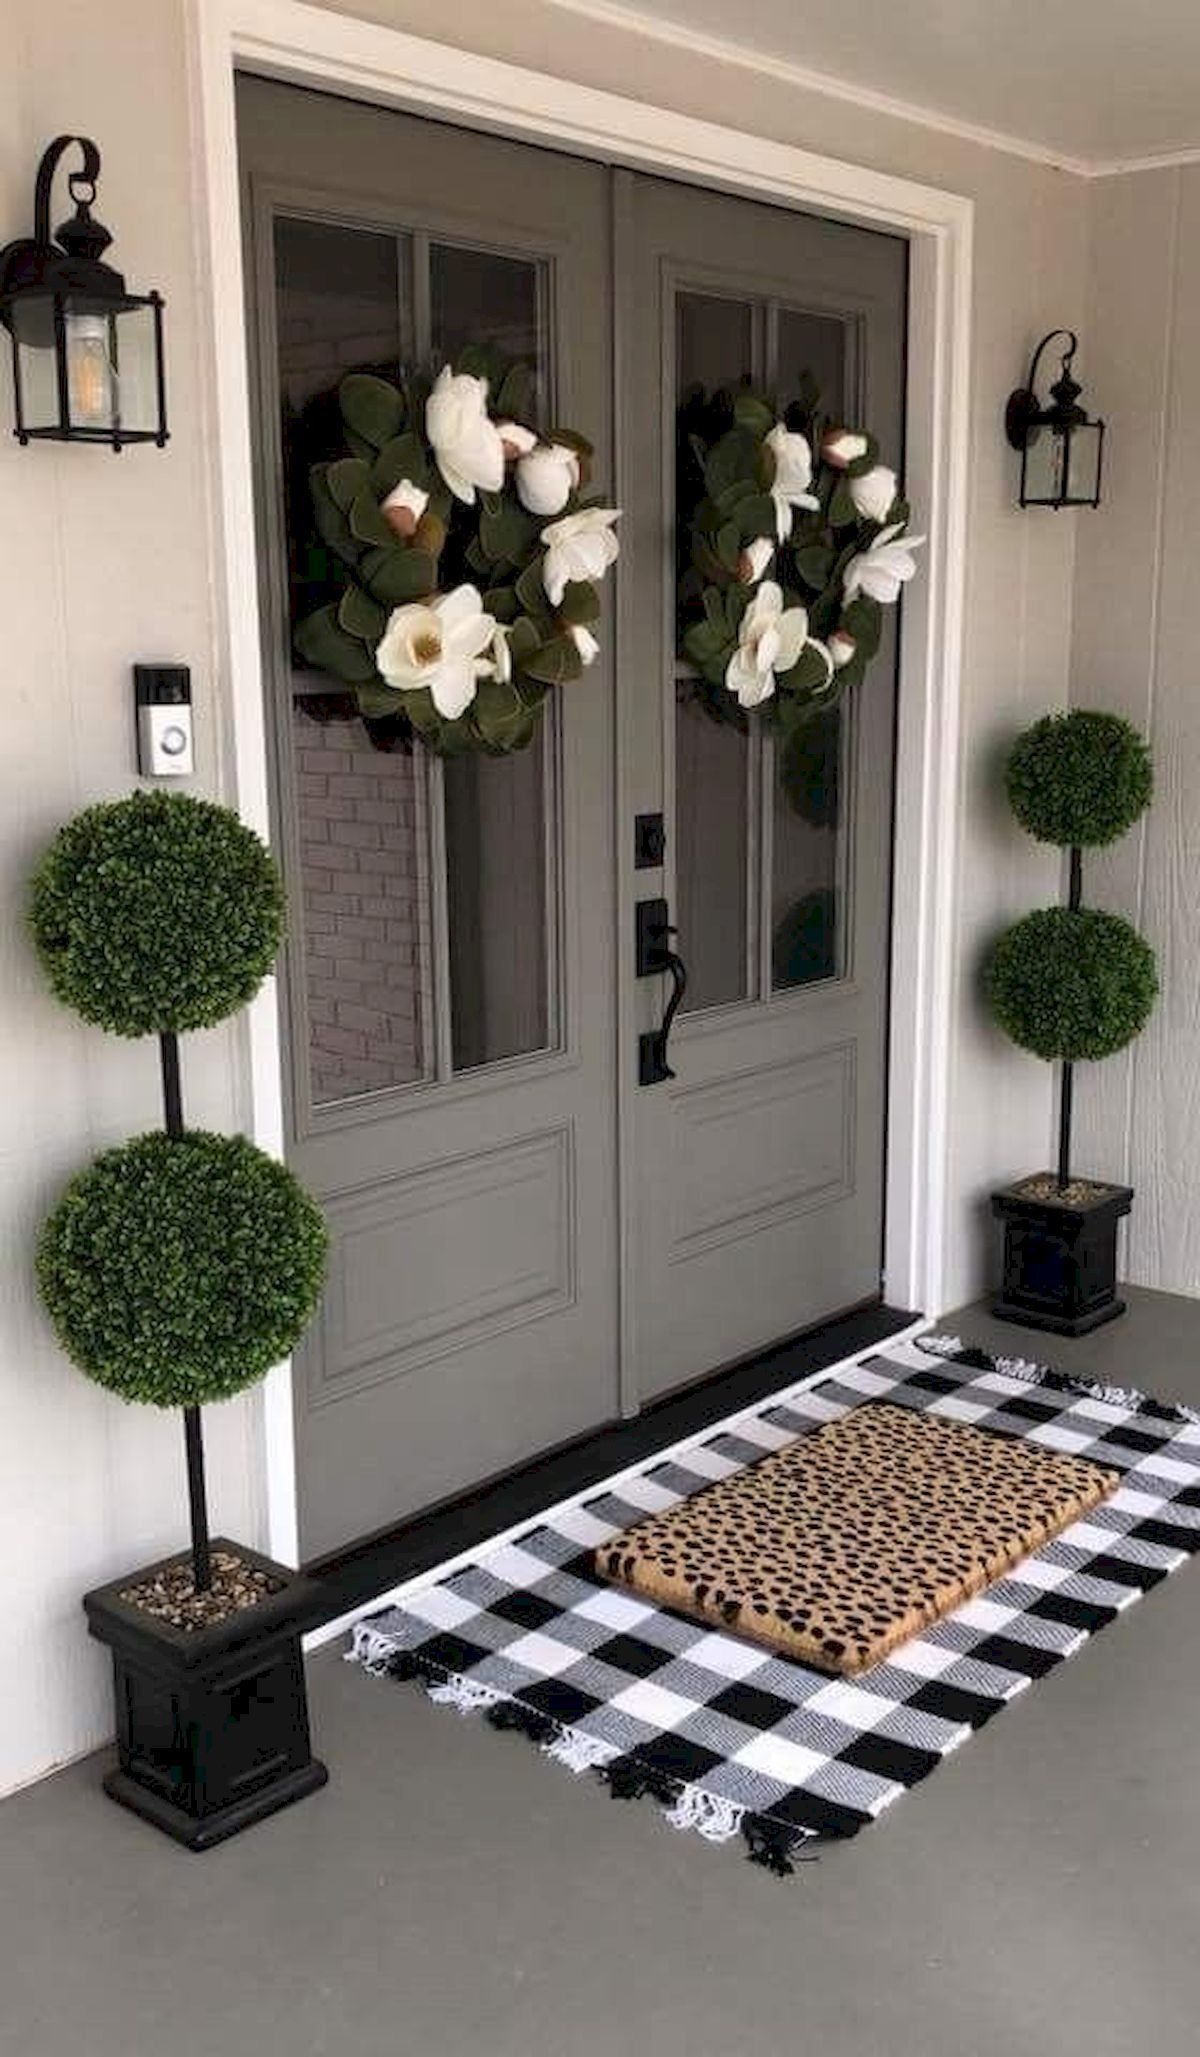 50 Beautiful Spring Decorating Ideas for Front Porch #smallporchdecorating